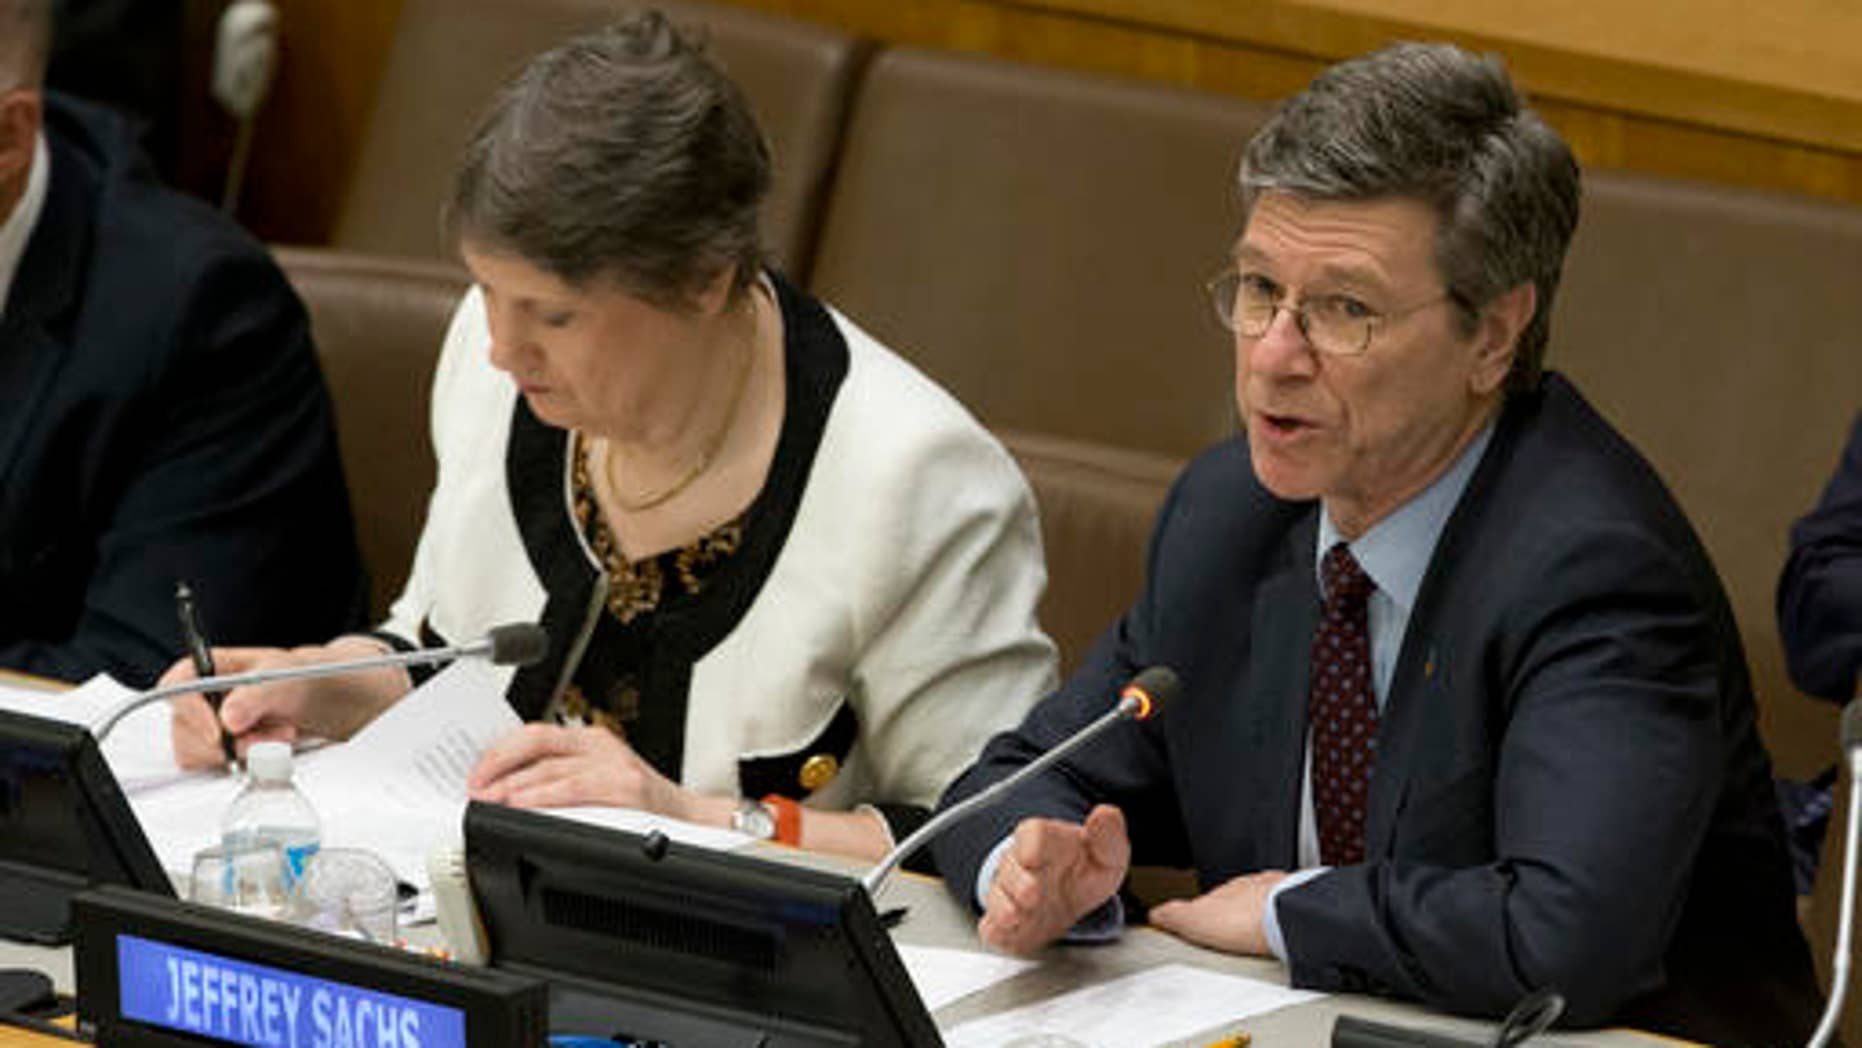 Earth Institute at Columbia University Director Jeffrey Sachs speaks during a high level meeting on the Implementation of the Climate and Development Agendas, April 22, 2016, at U.N. headquarters. (AP Photo/Mary Altaffer)